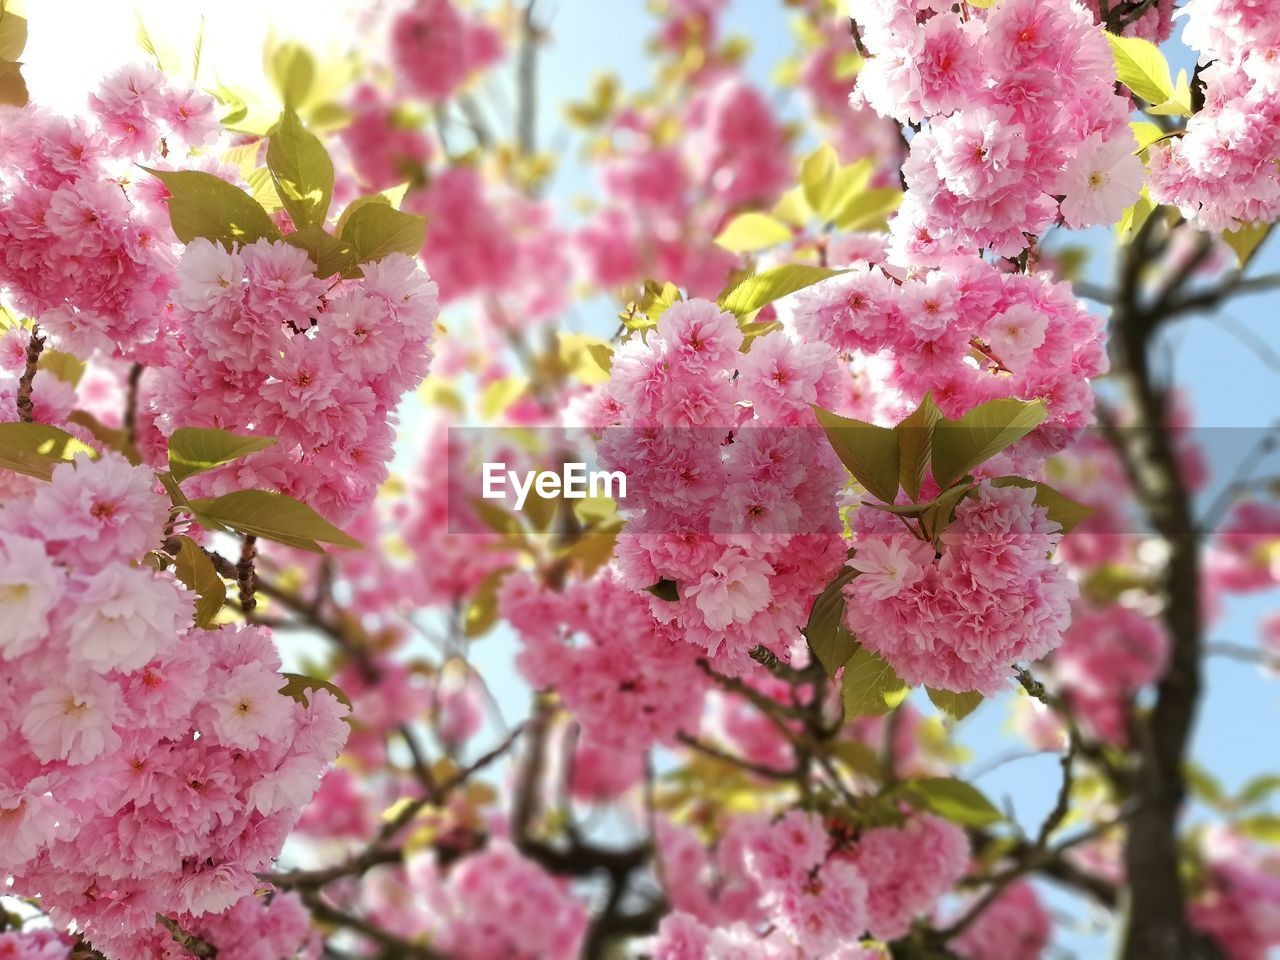 flowering plant, pink color, flower, fragility, plant, growth, vulnerability, freshness, beauty in nature, blossom, close-up, springtime, petal, no people, day, selective focus, nature, botany, tree, branch, cherry blossom, outdoors, flower head, cherry tree, pollen, spring, bunch of flowers, lilac